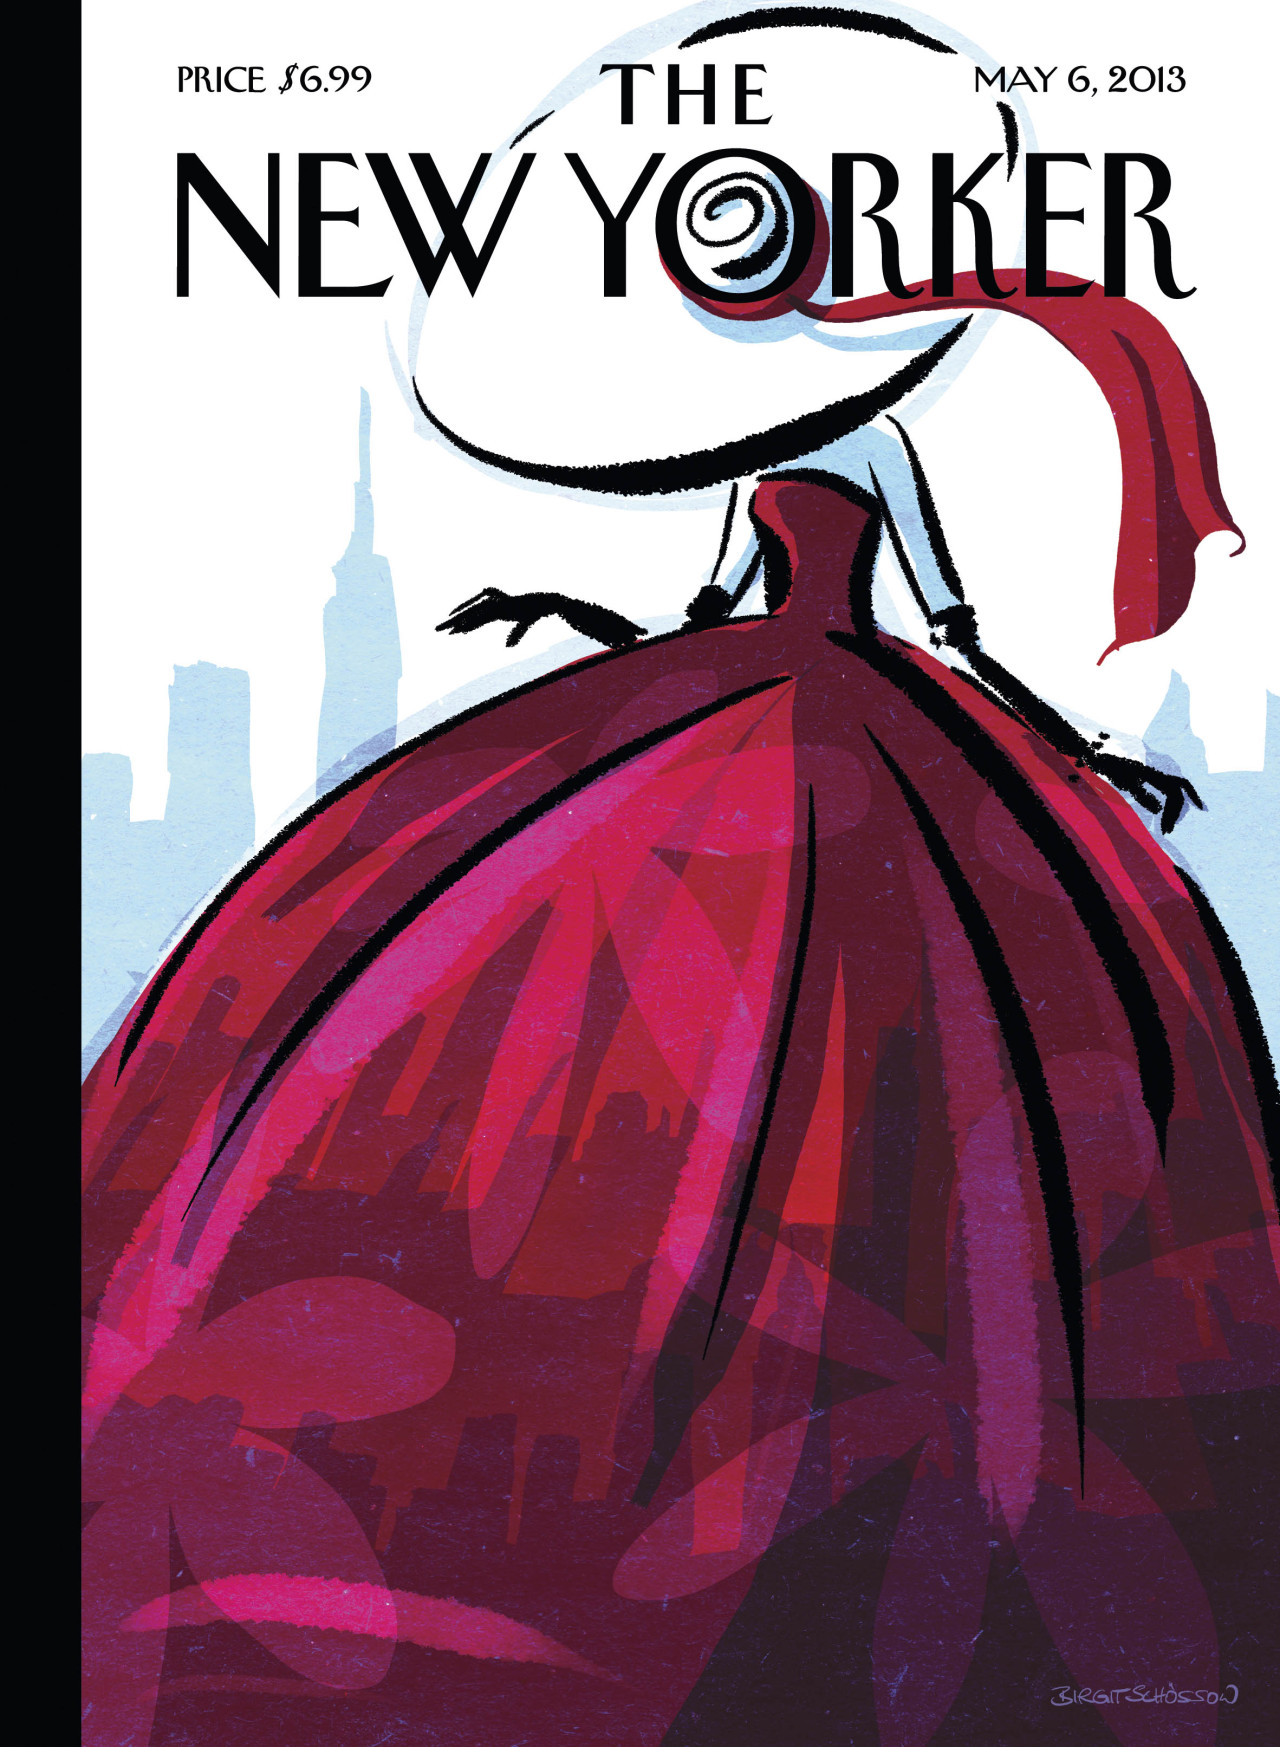 "newyorker:            ""When I visited New York, one of my favorite things to do was to explore the various flea markets,"" says Birgit Schössow, the German artist behind this week's cover, ""City Flair."" ""And in the last few years, I've even ordered some beautiful costumes and dresses from the forties and fifties from New York's vintage shops online. These little works of art are simply beautiful to look at from time to time, and to wear every now and then. There's so much history in a costume that is already nearly seventy years old! It allows you to fantasize each story.""  She concludes: ""I love the very feminine styles of that era; my cover was inspired by the fashion drawings of that time. But jeans are much more practical, of course.""            Cover of the May 6, 2013 issue. Get the story behind this week's cover, ""City Flair"" by Birgit Schössow as well as a slide show of other New Yorker covers depicting city flair: http://nyr.kr/18827FZ  Beautiful."